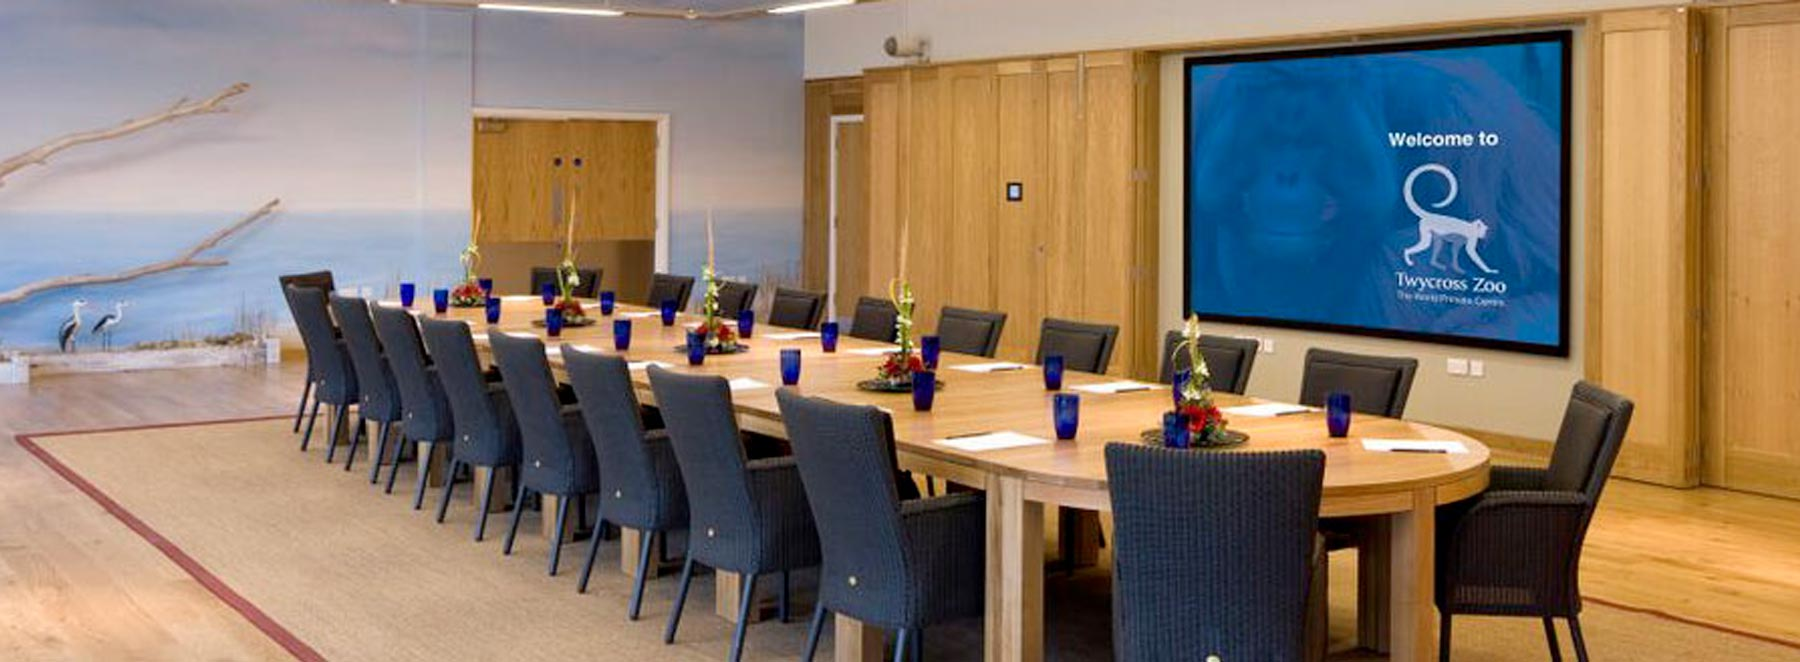 Boardroom AV Installation